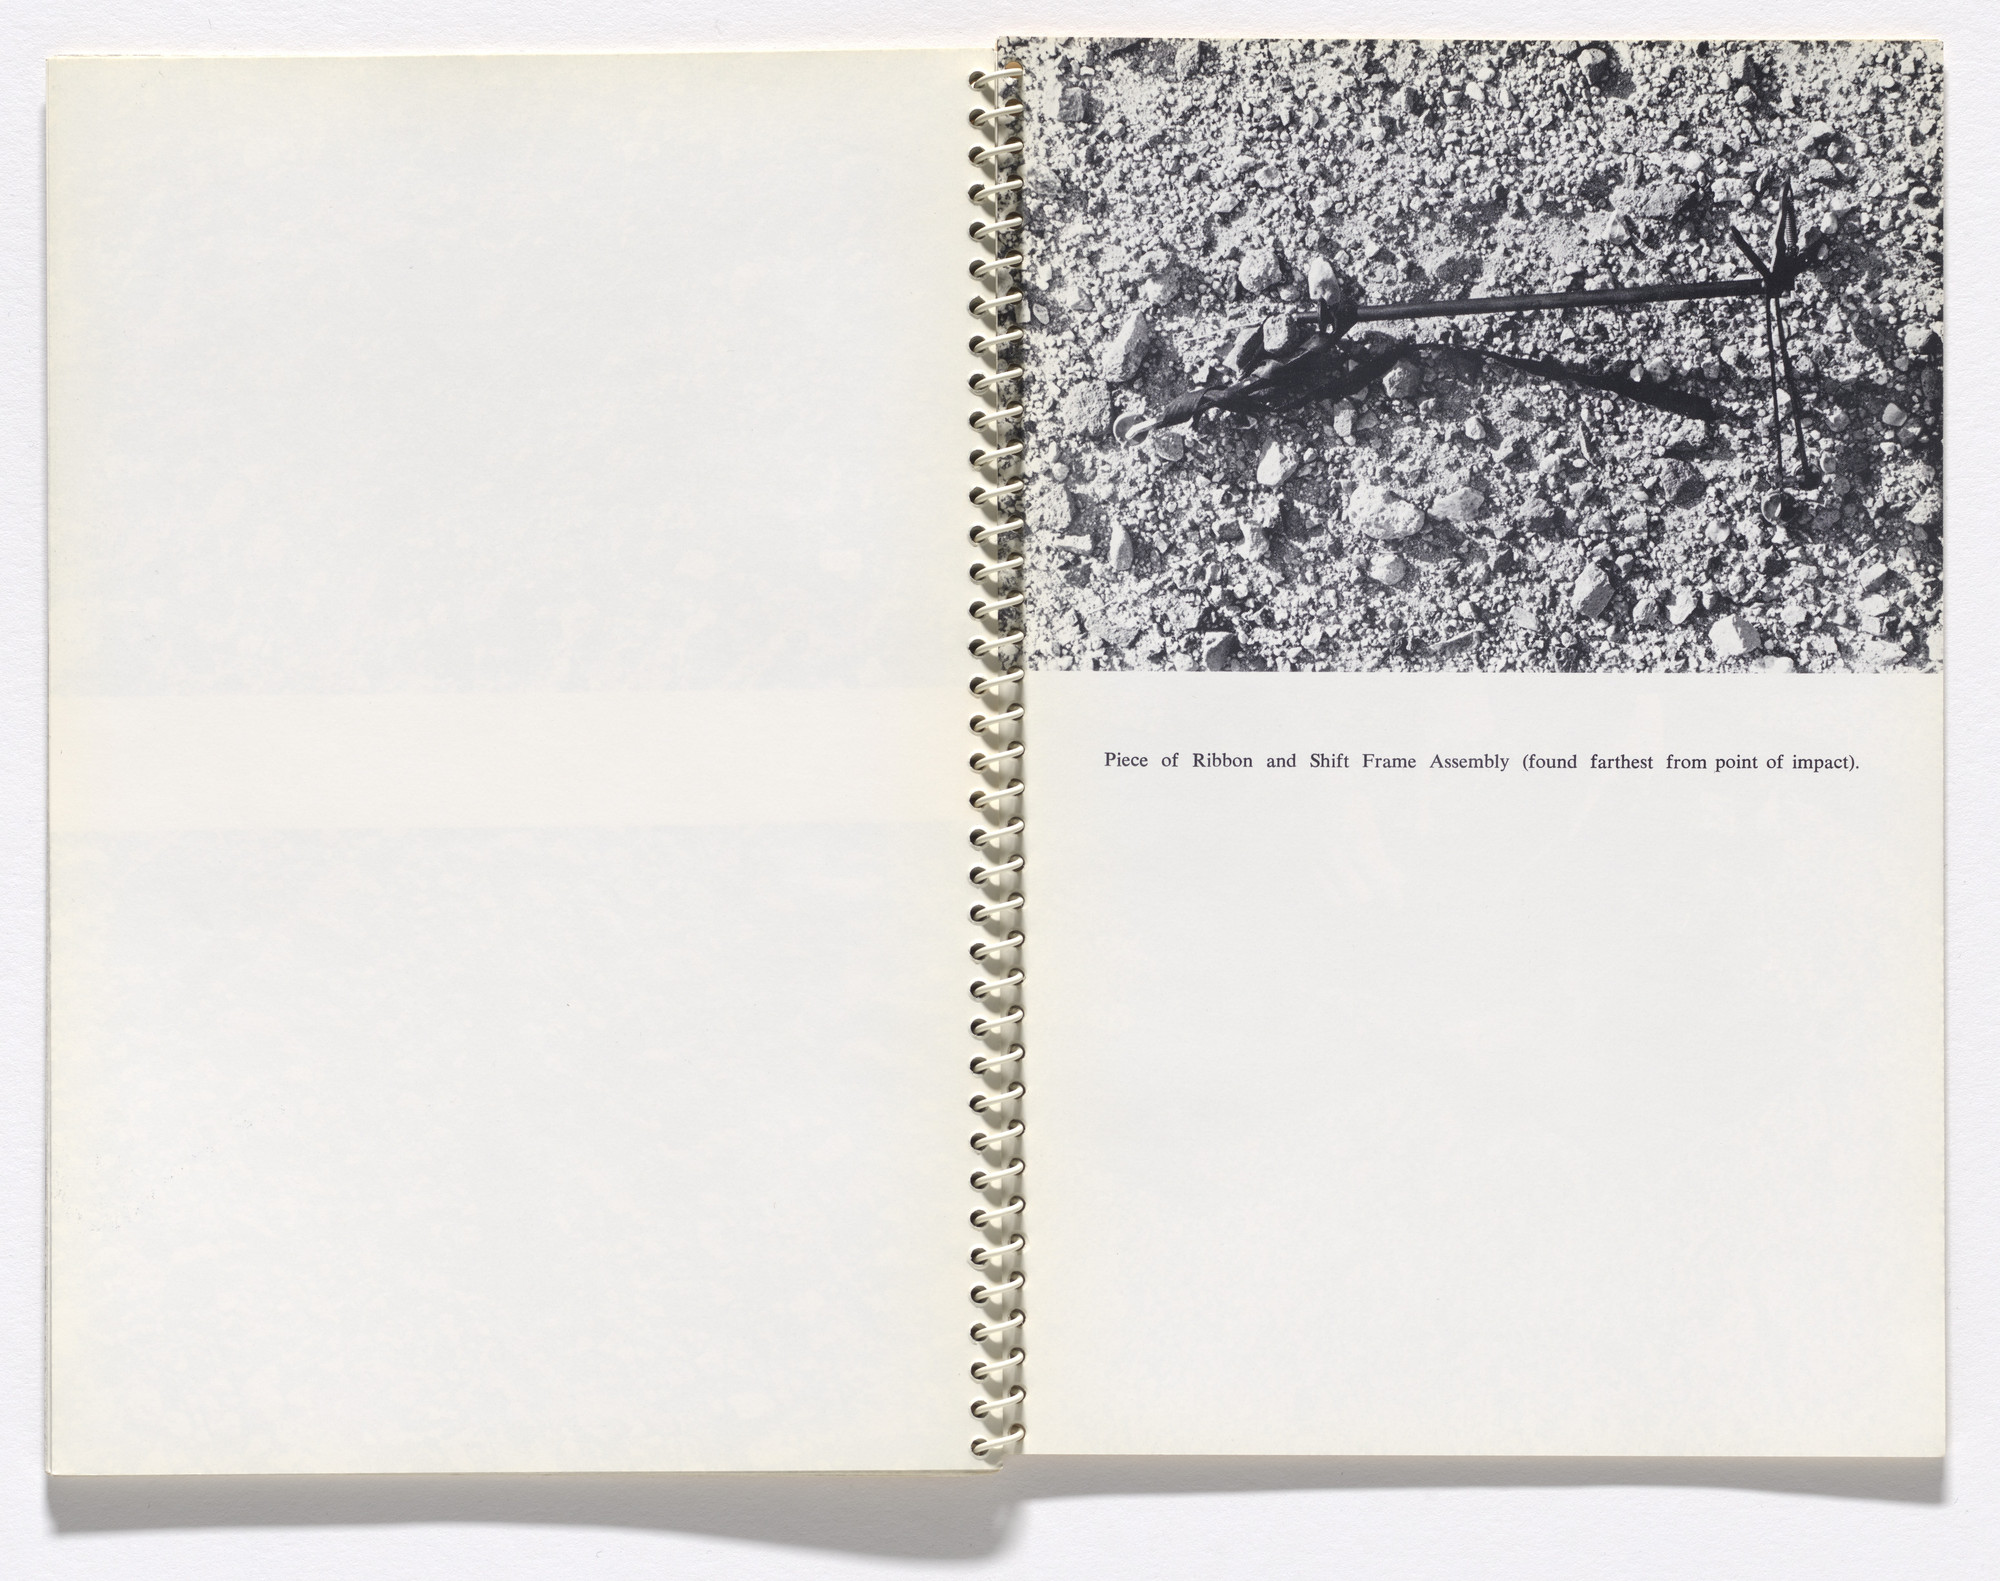 Edward Ruscha, Mason Williams, Patrick Blackwell. Royal Road Test. 1967